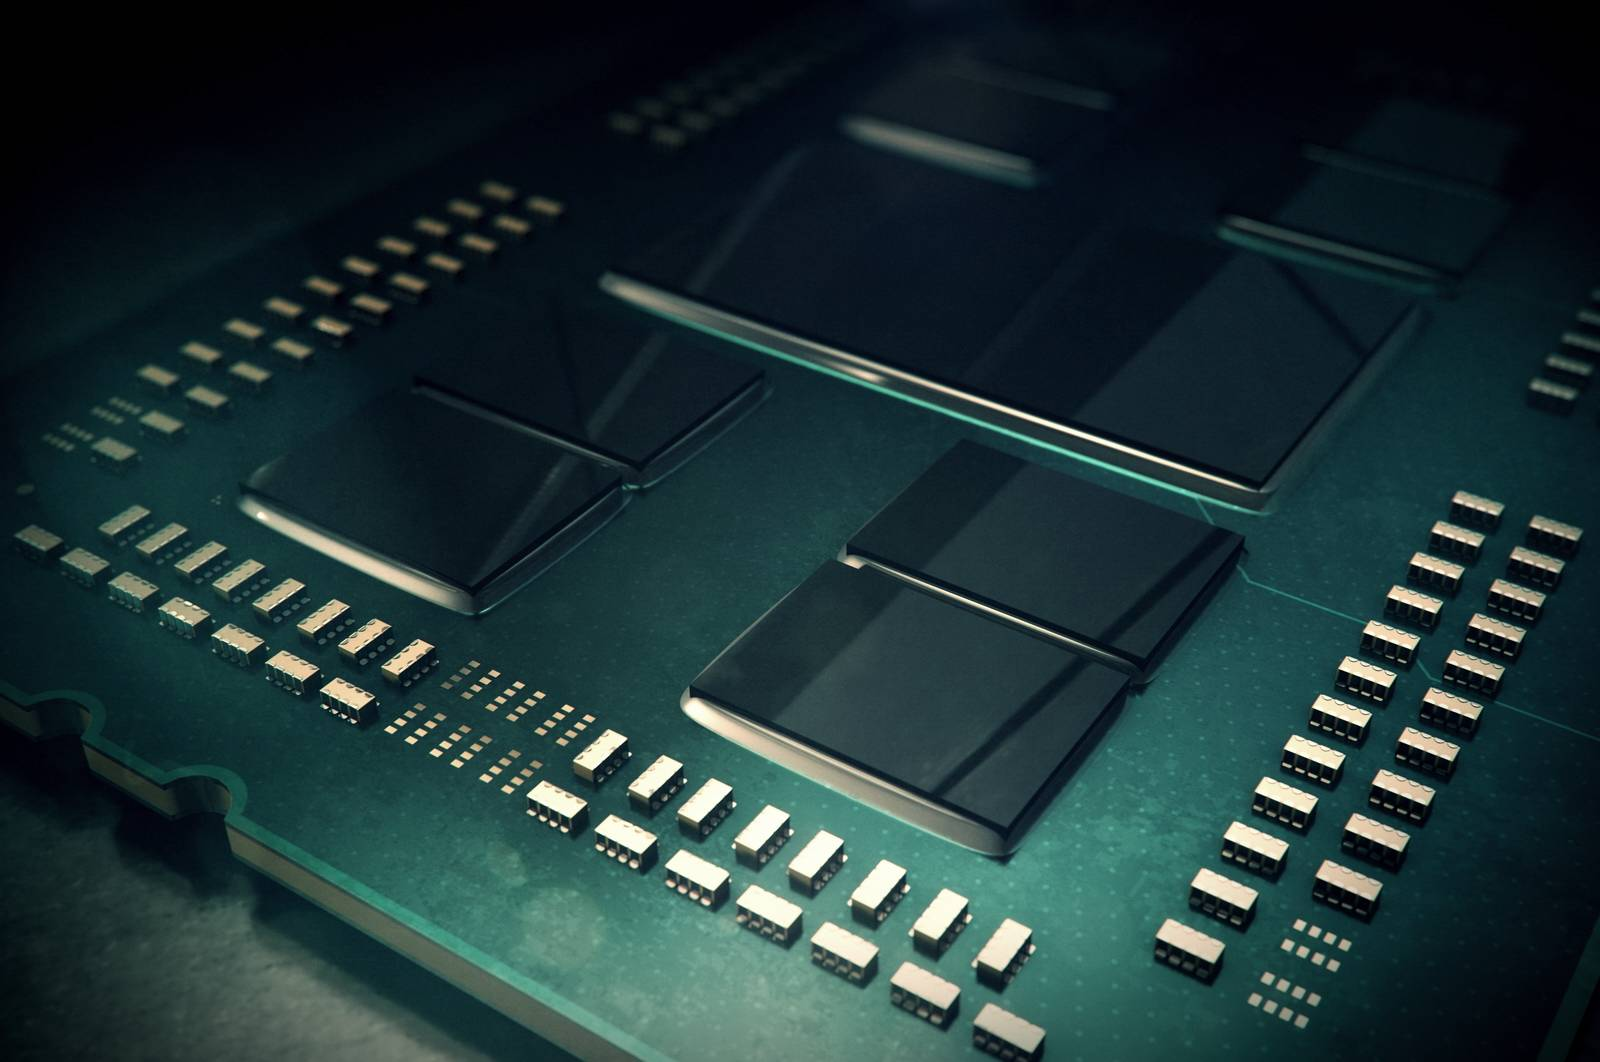 AMD quietly upgrades EPYC 3000 series processors: 8 cores, 16 threads, minimum 25W TDP